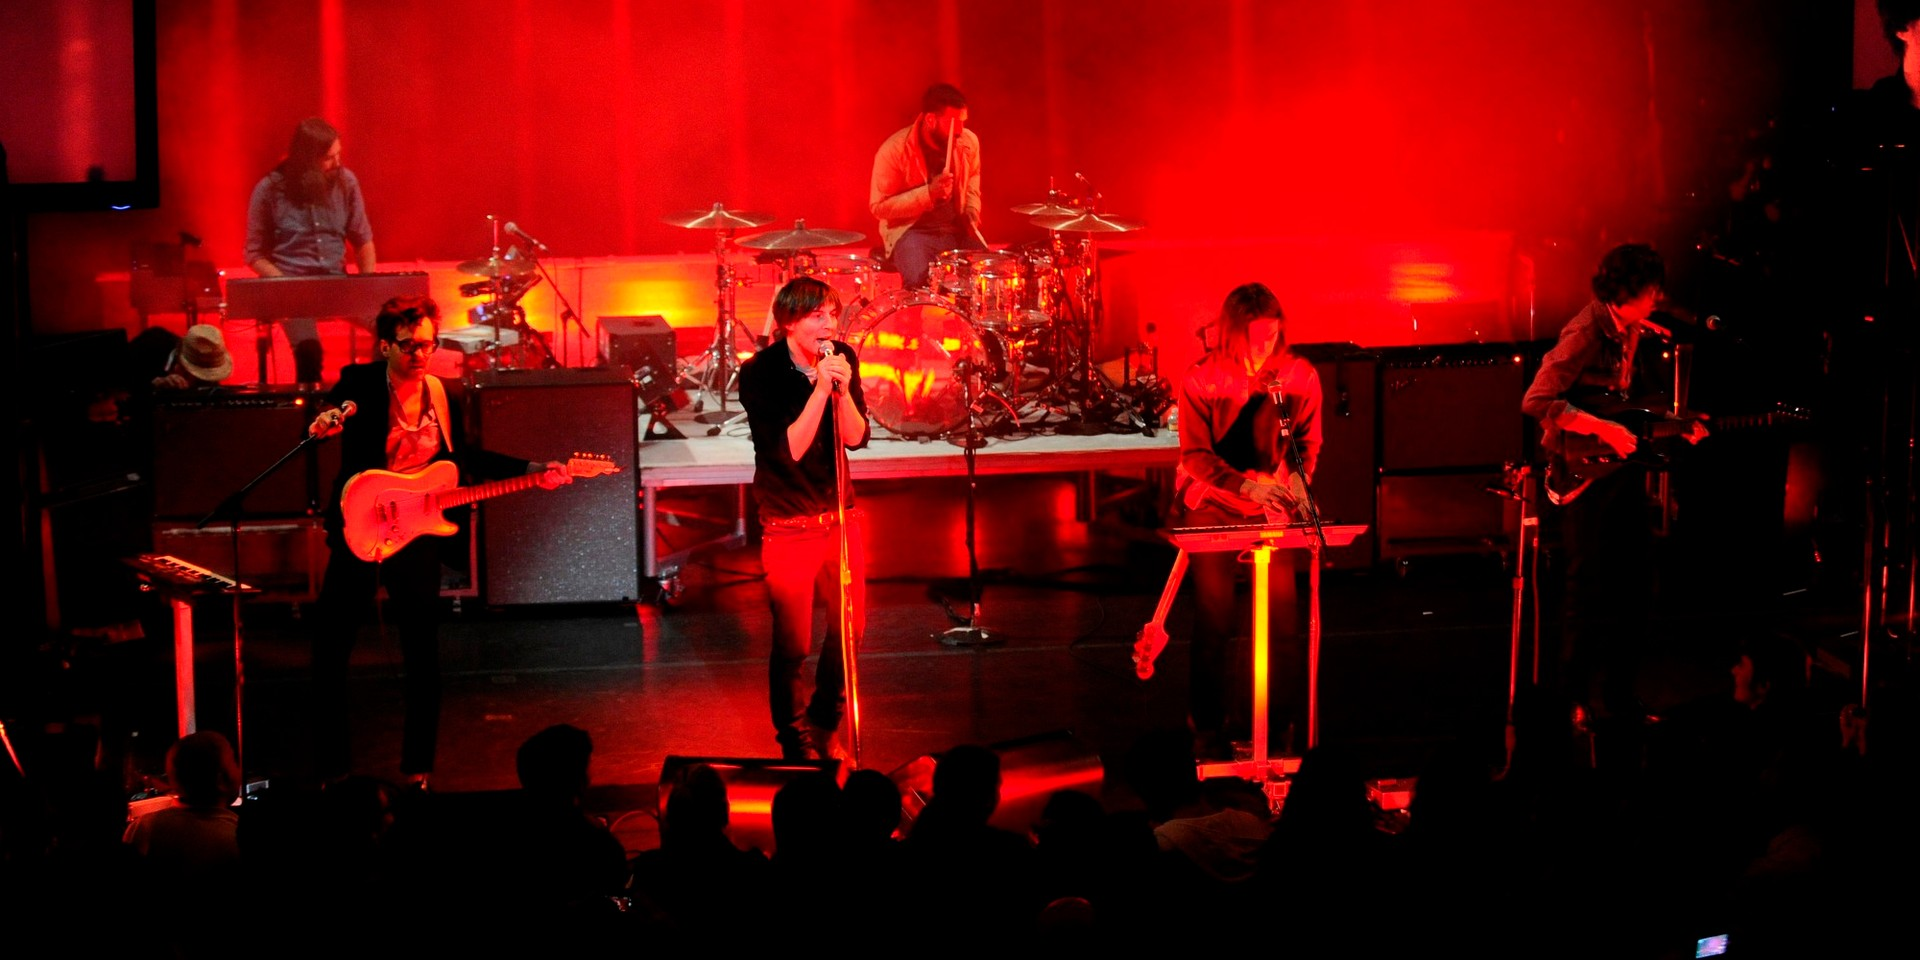 Phoenix previews 2017 tour set list with 3 new songs at first live show since 2014